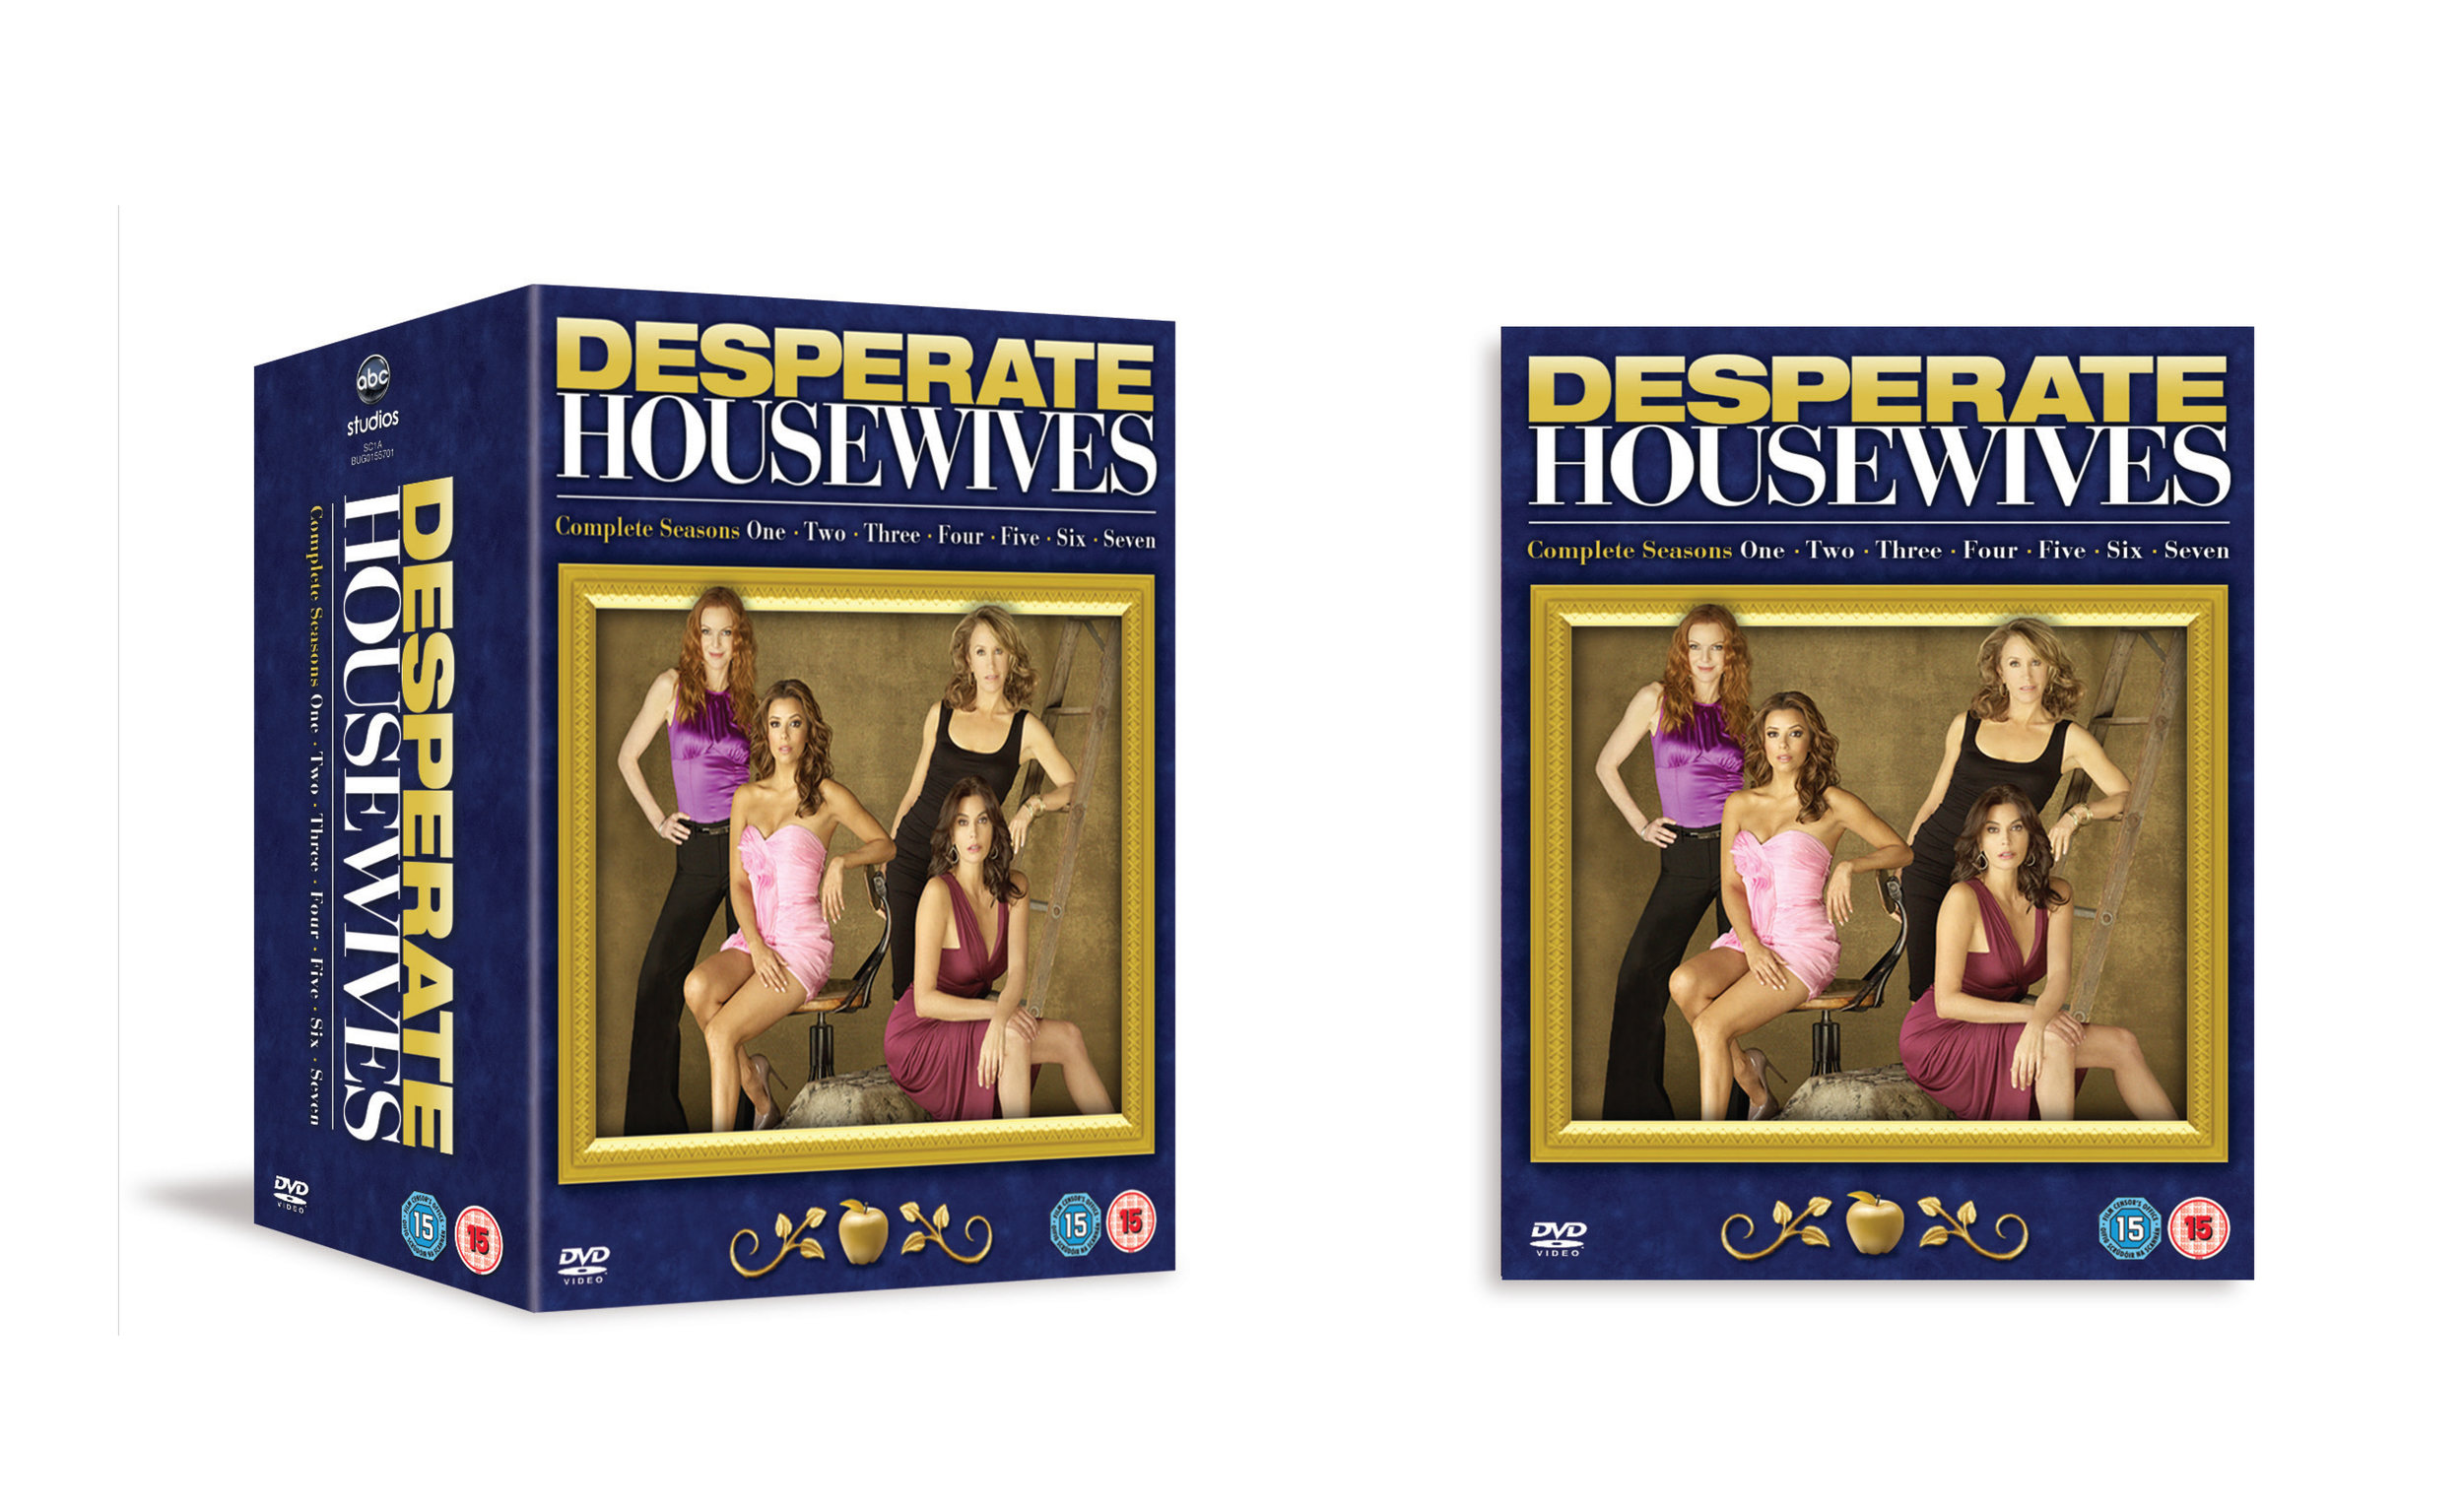 DESPERATE HOUSEWIVES_5_18_11.jpg